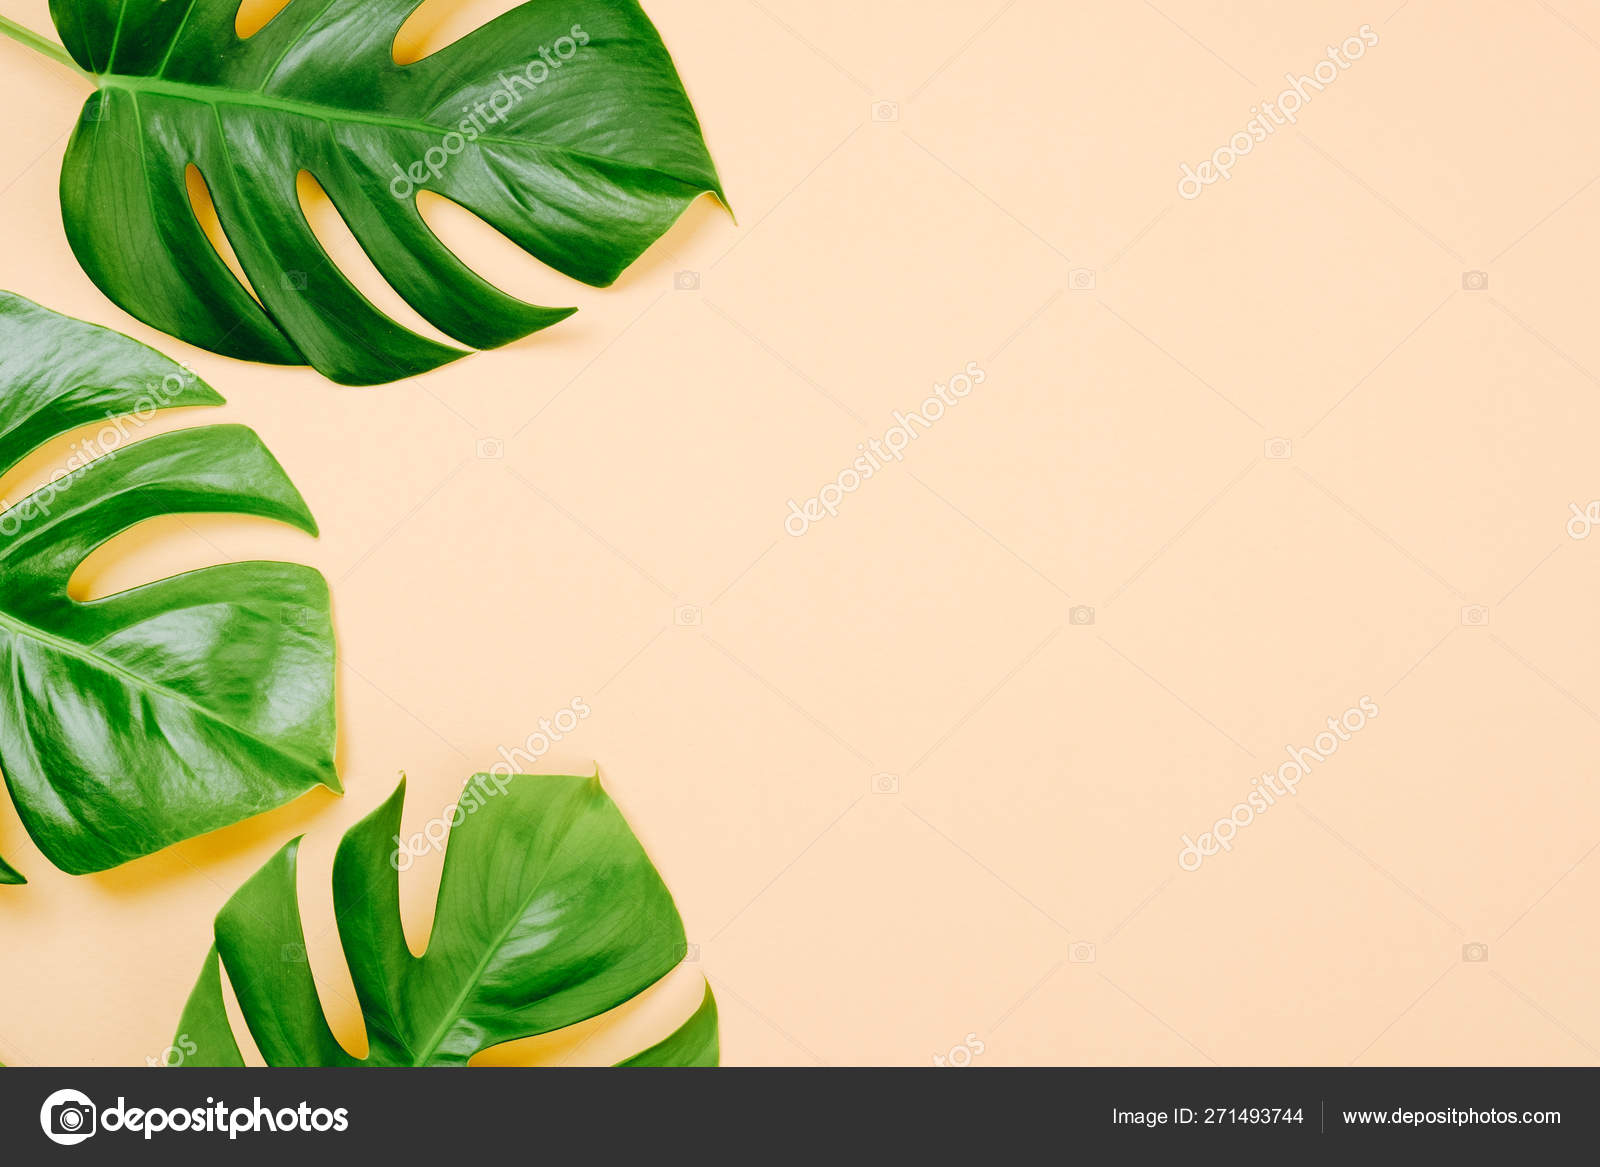 Tropical Leaves Monstera On Yellow Background With Space For A Text Flat Lay Top View Pastel Colors Summer Minimal Concept Stock Photo C Savanevich 271493744 Why are the leaves on my monstera limp and drooping? tropical leaves monstera on yellow background with space for a text flat lay top view pastel colors summer minimal concept stock photo c savanevich 271493744